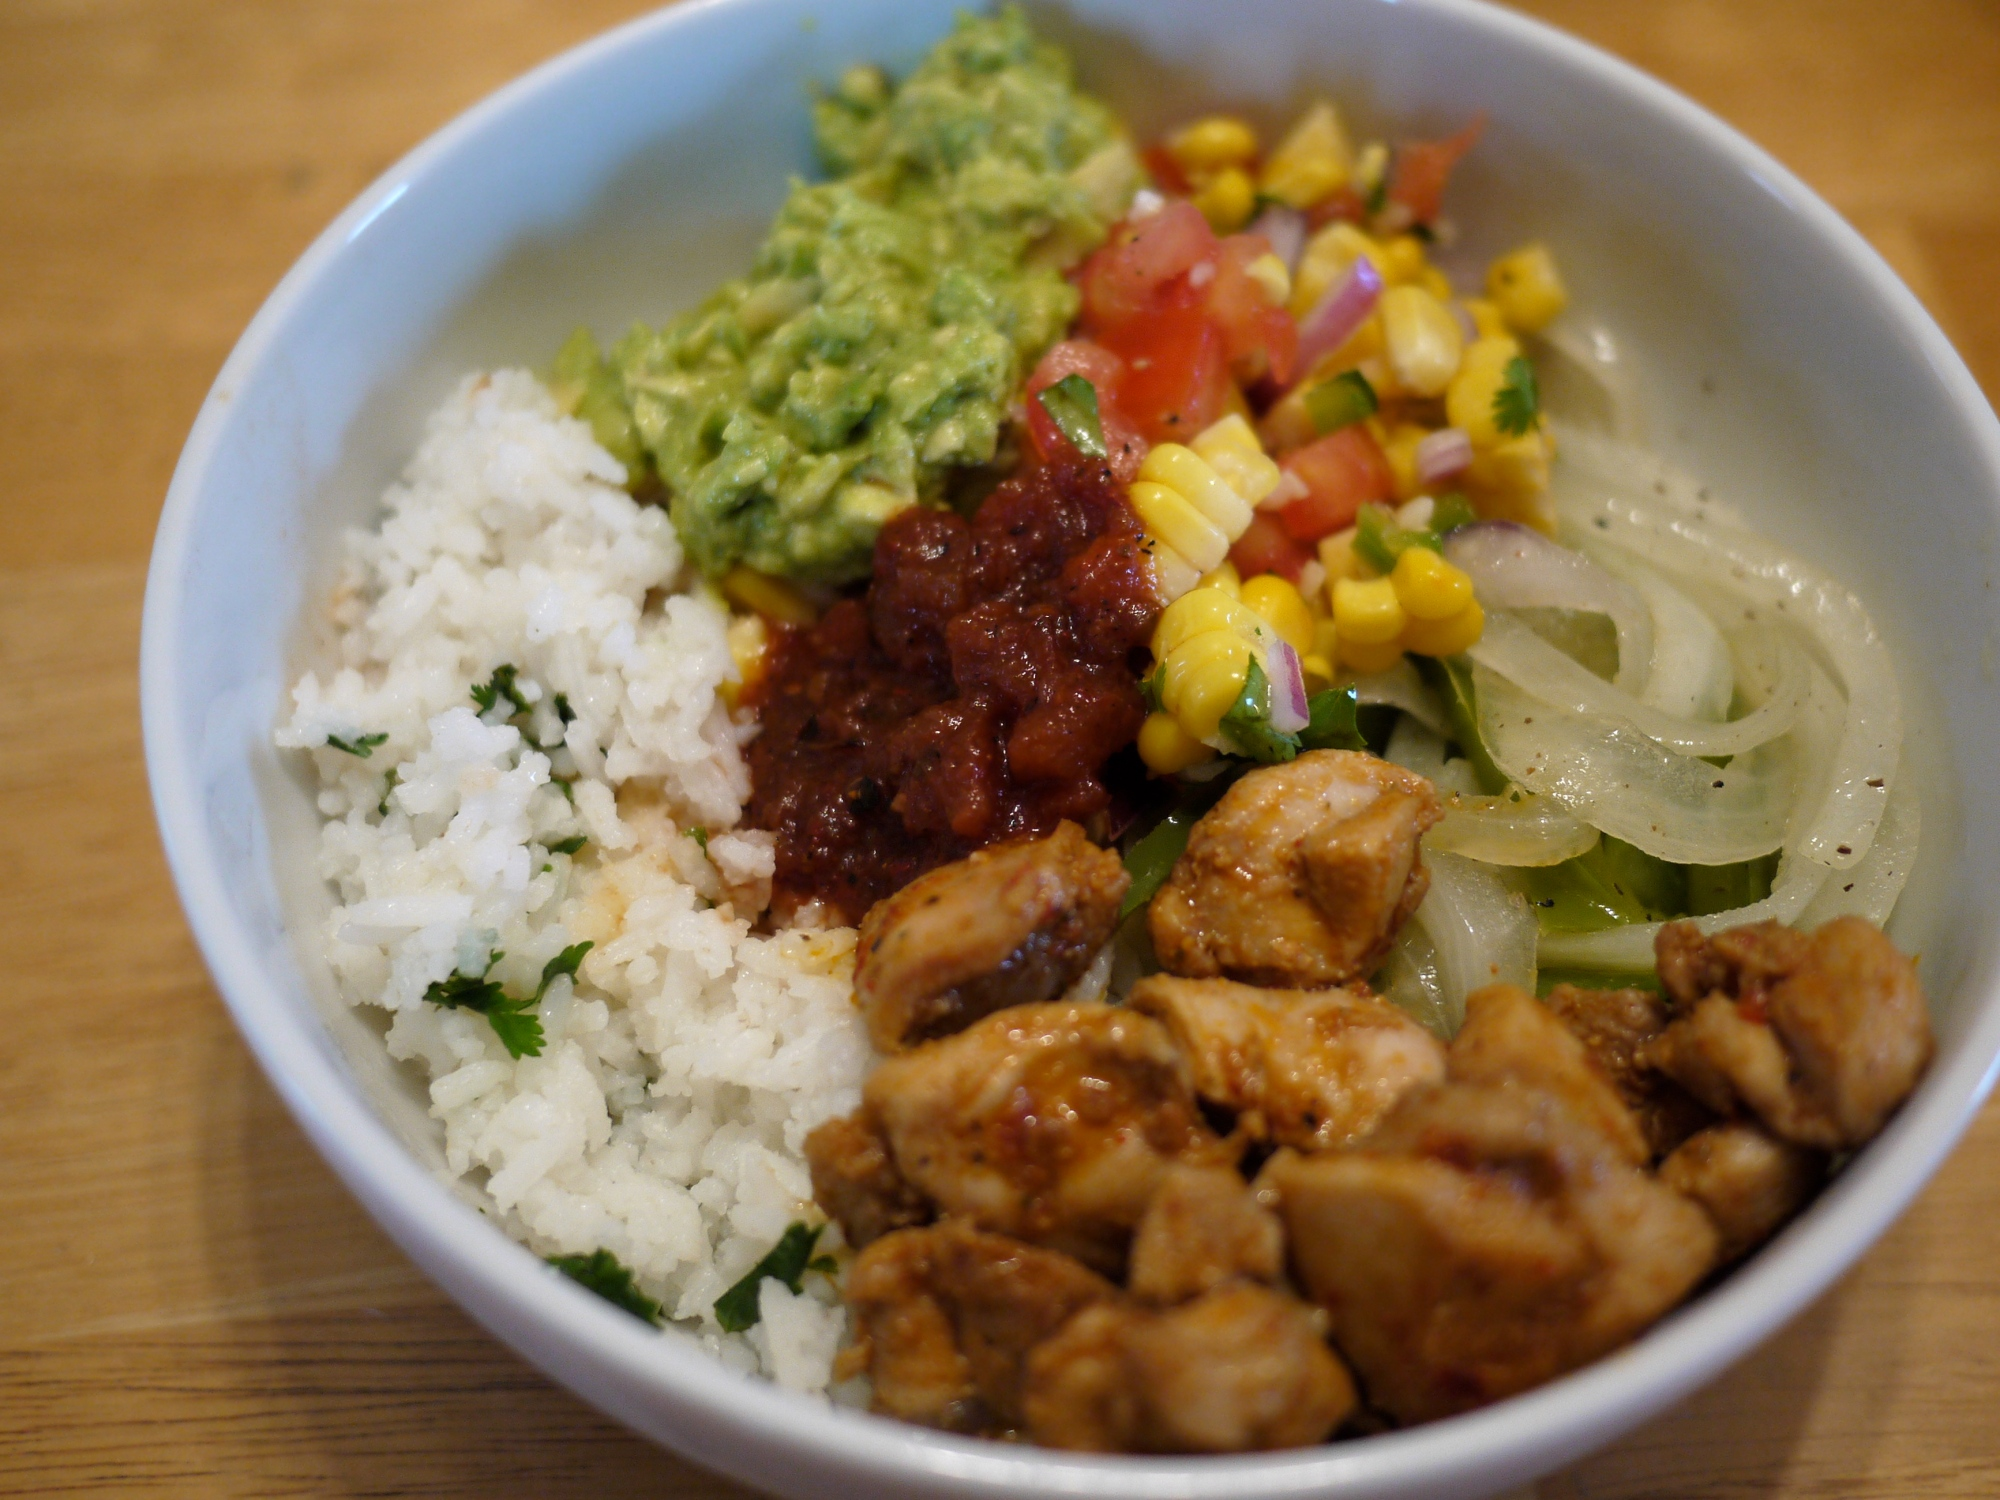 chipotle at home